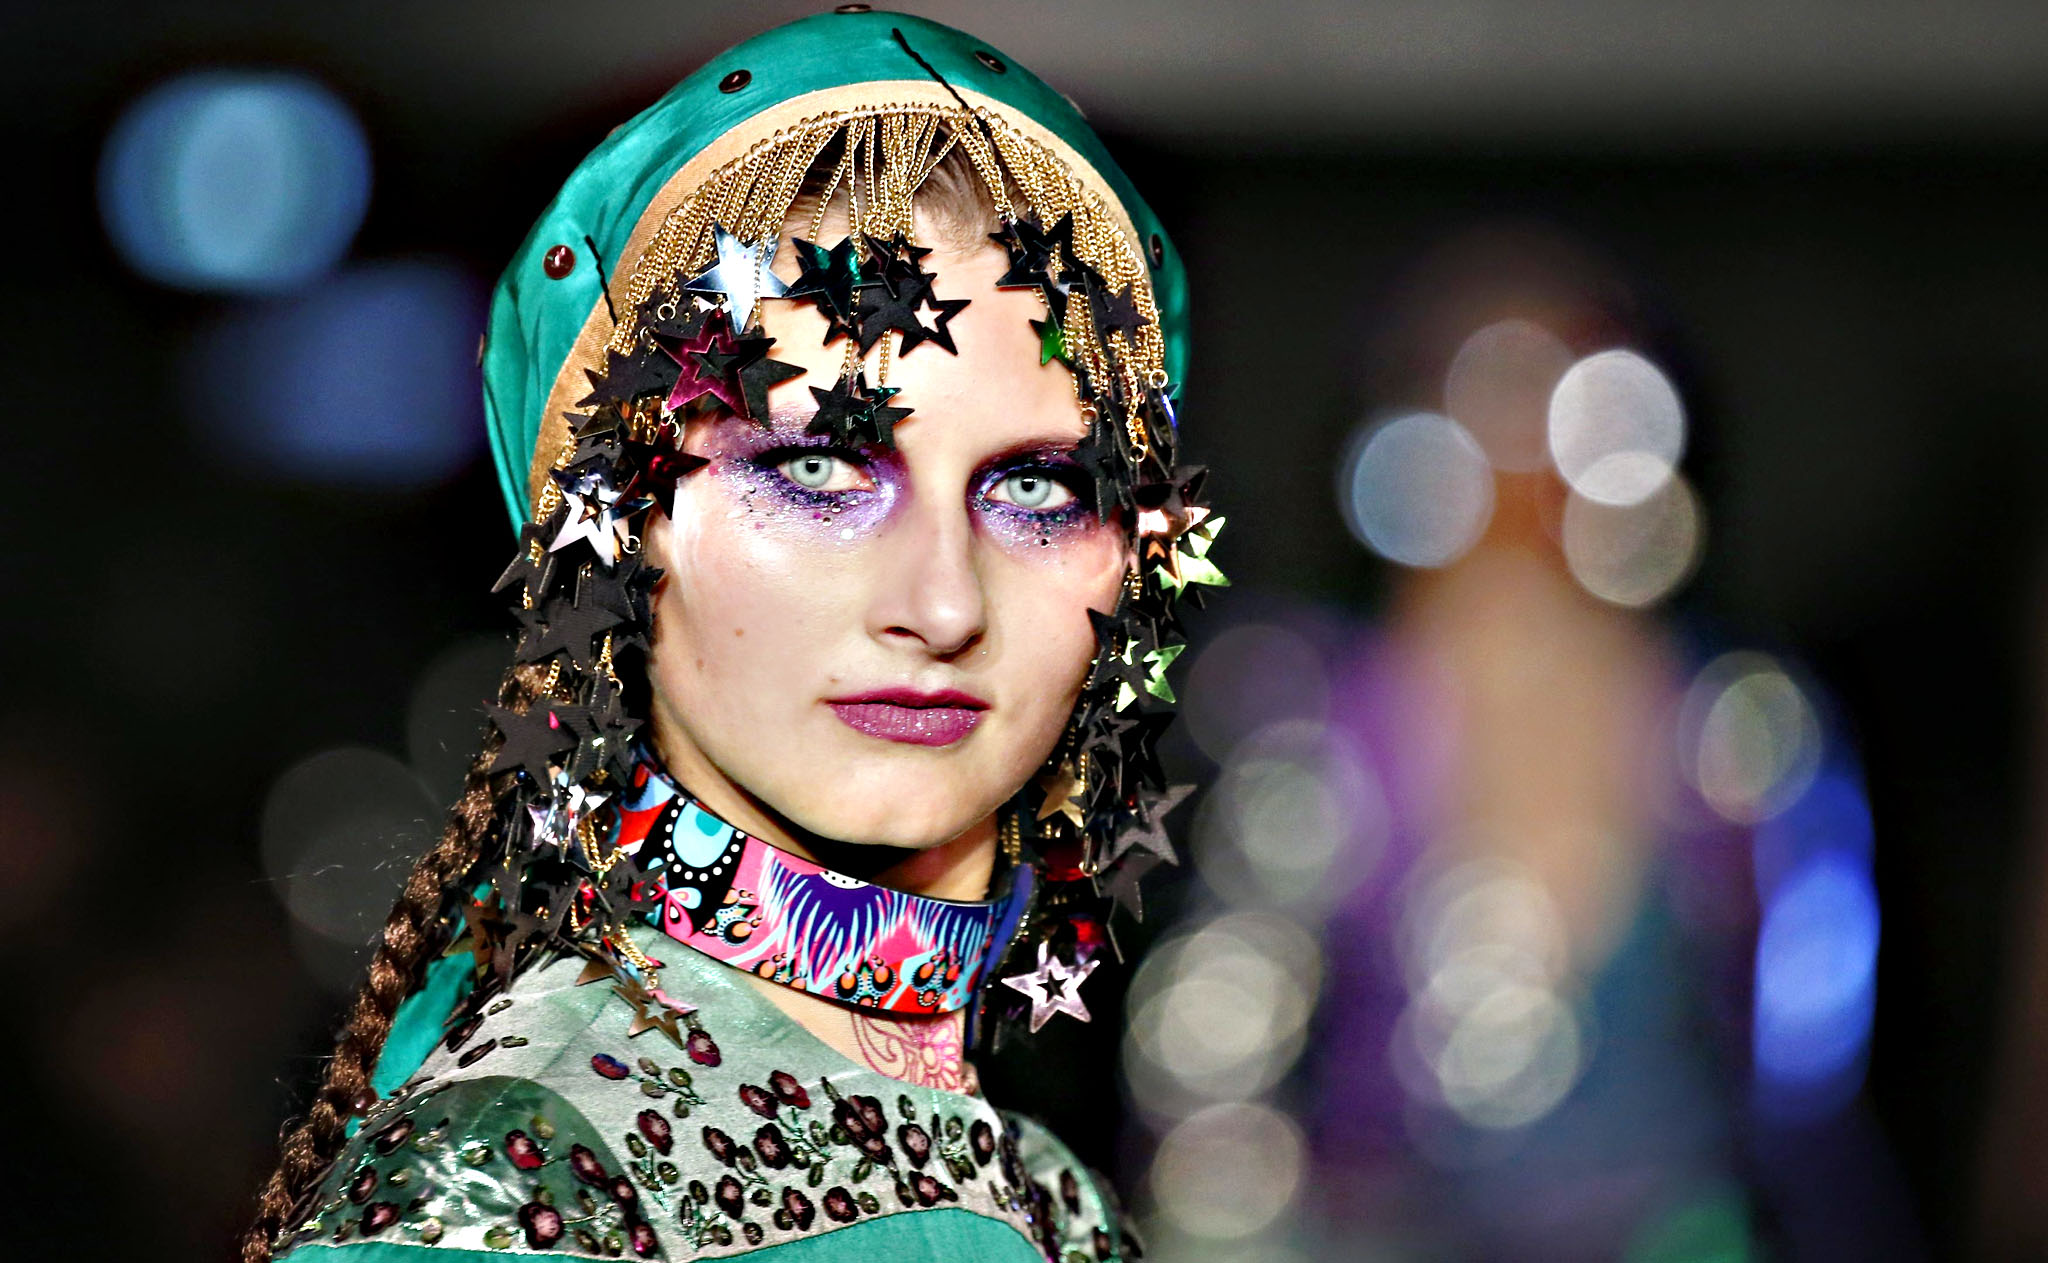 A model presents a creation by Indian designer Manish Arora as part of his Spring/Summer 2016 women's ready-to-wear fashion show in Paris, France, October 1, 2015.